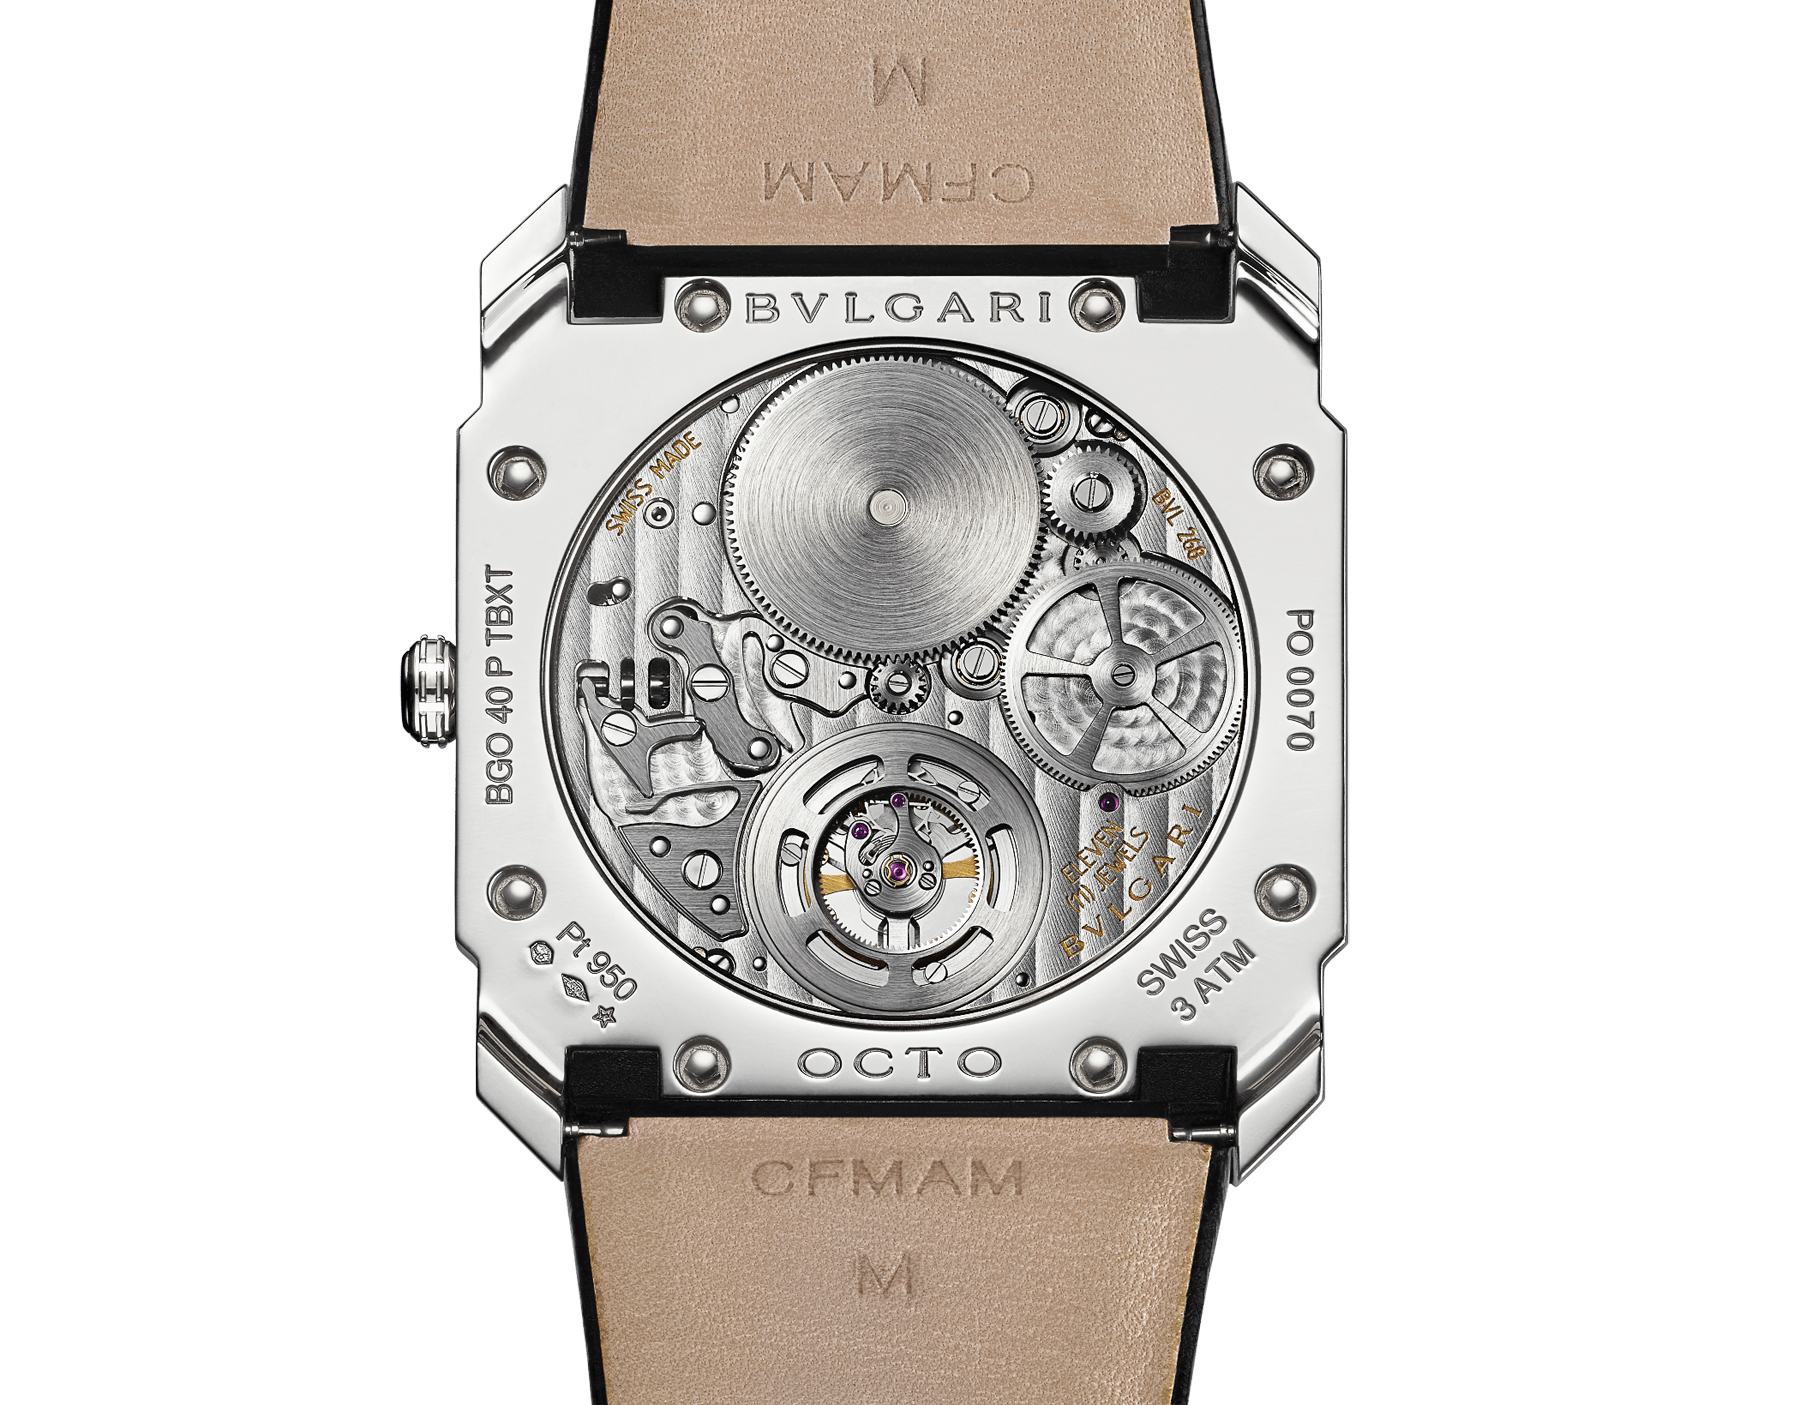 Octo Finissimo Tourbillon watch with extra thin mechanical manufacture movement and manual winding, platinum case, black lacquered dial and black alligator bracelet. 102138 image 4